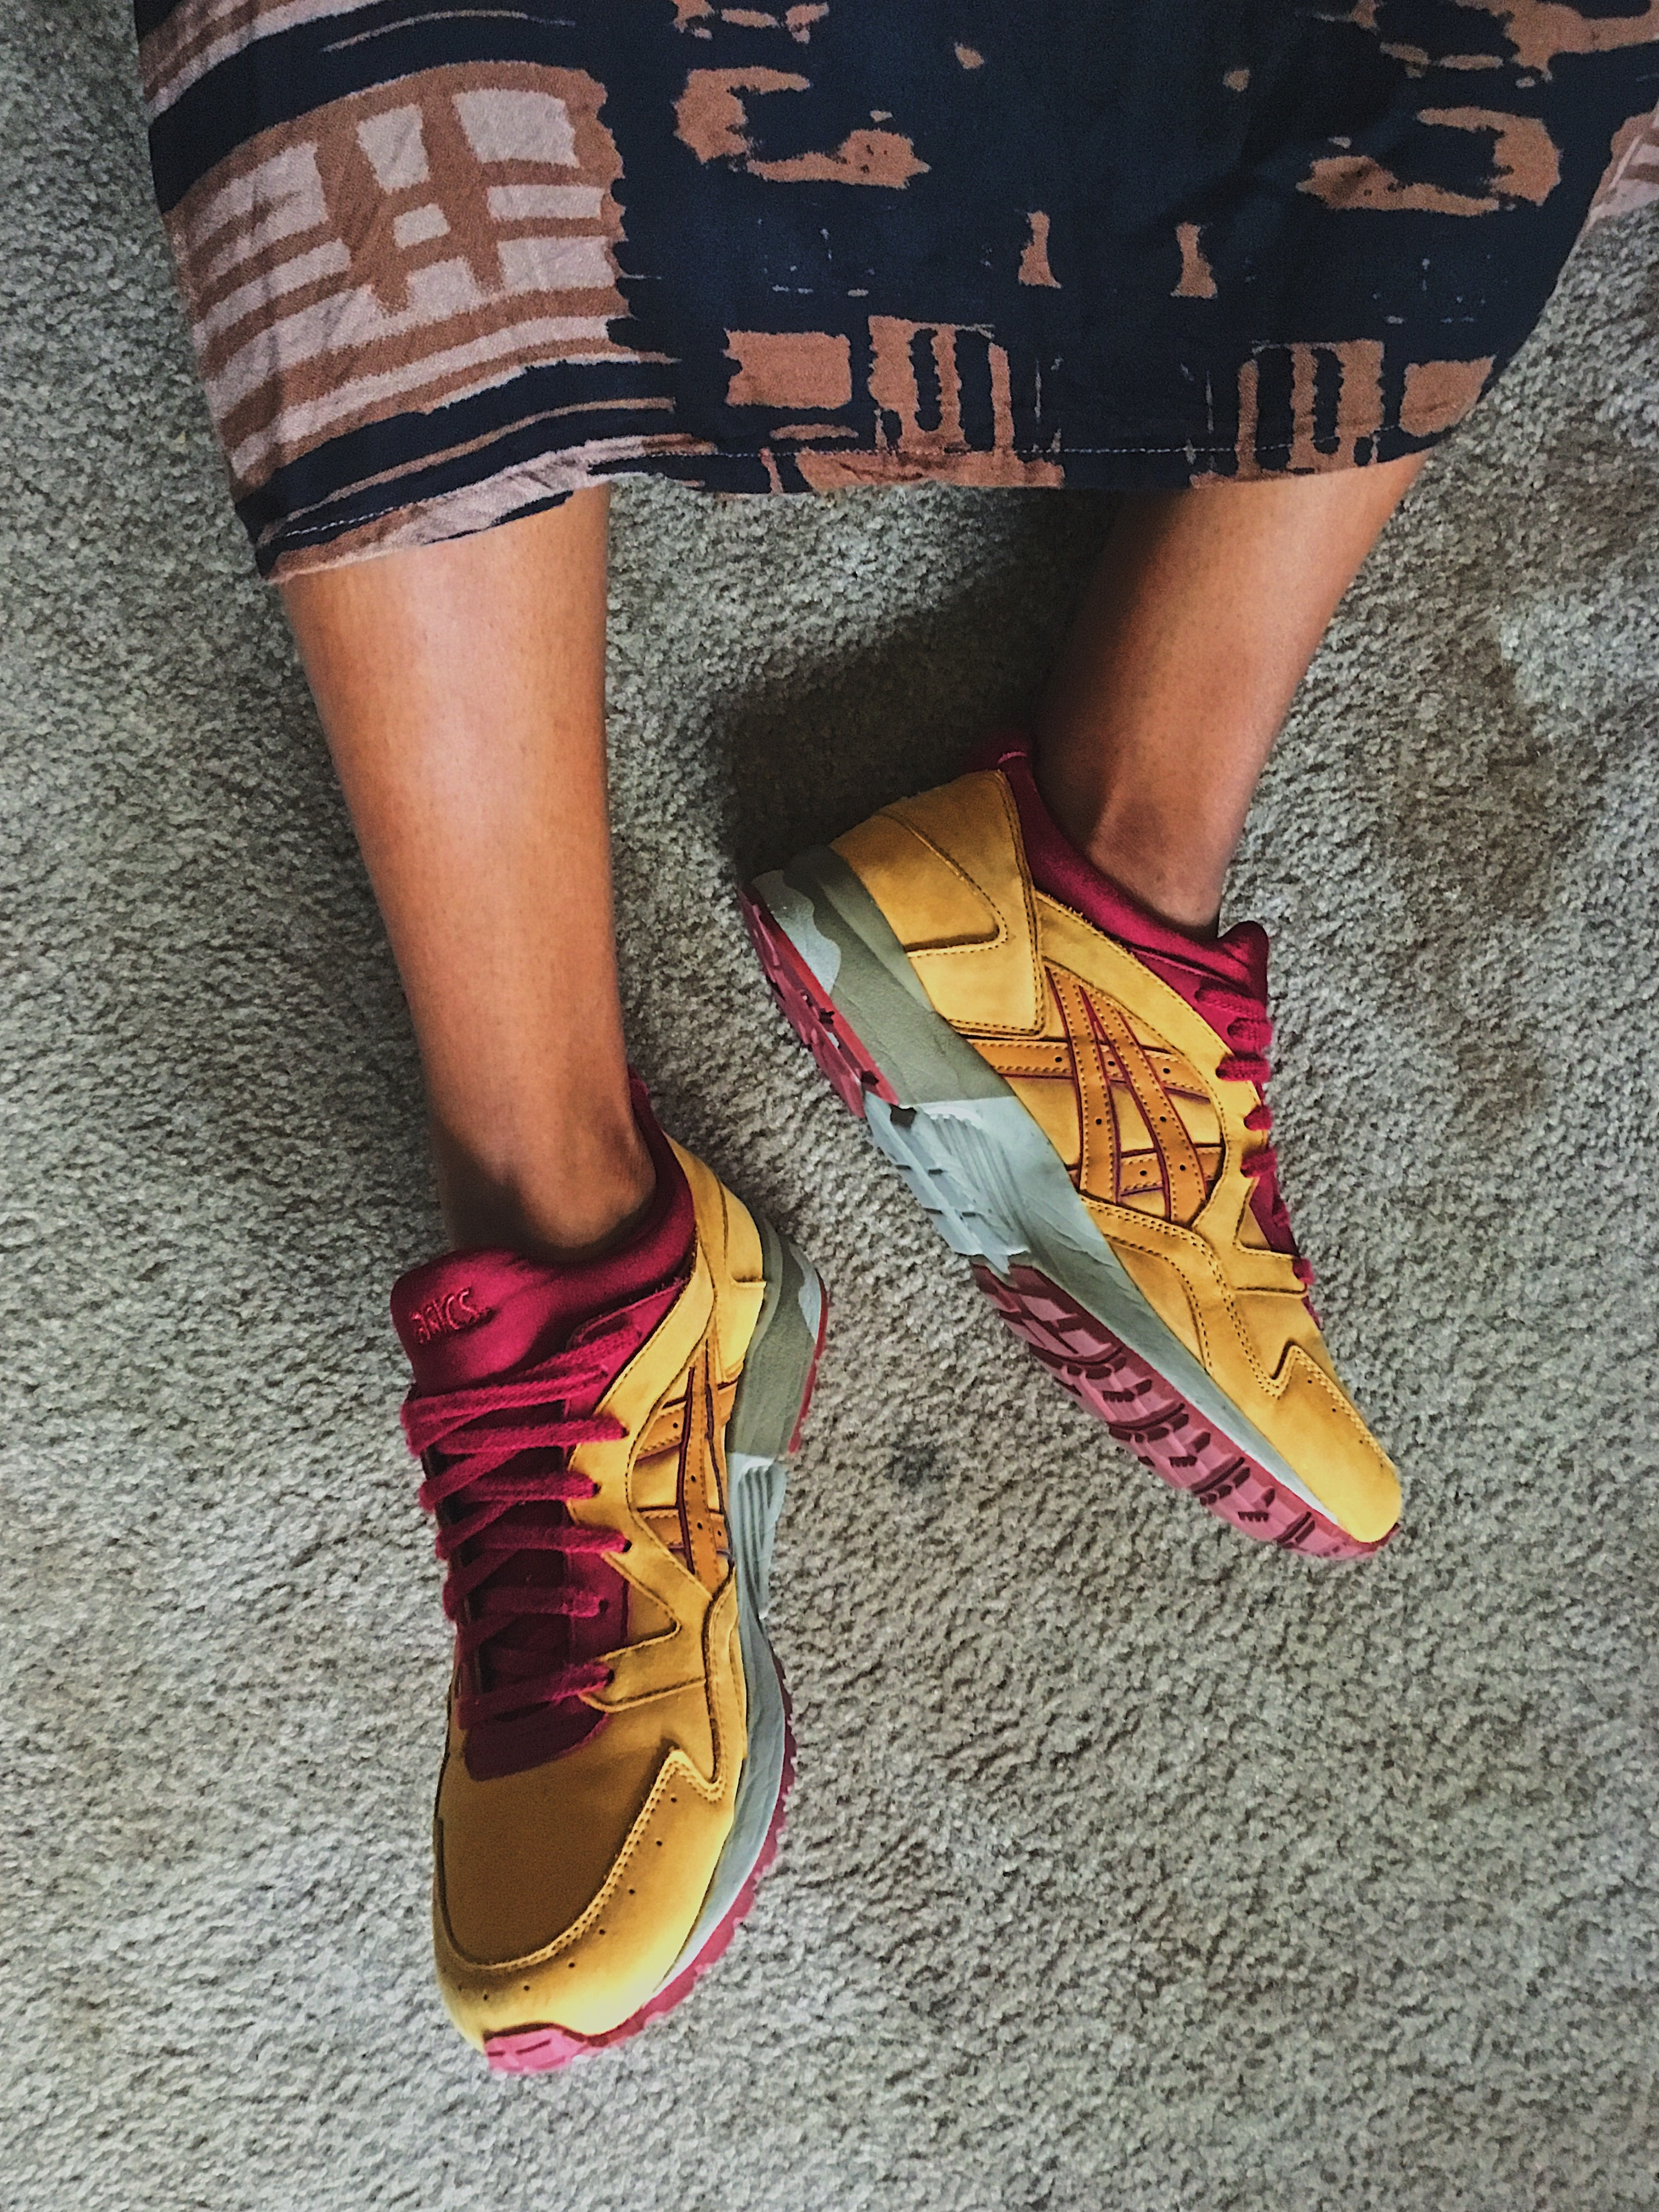 fit femme-sneakers with dresses-gel lyte V-asics tiger